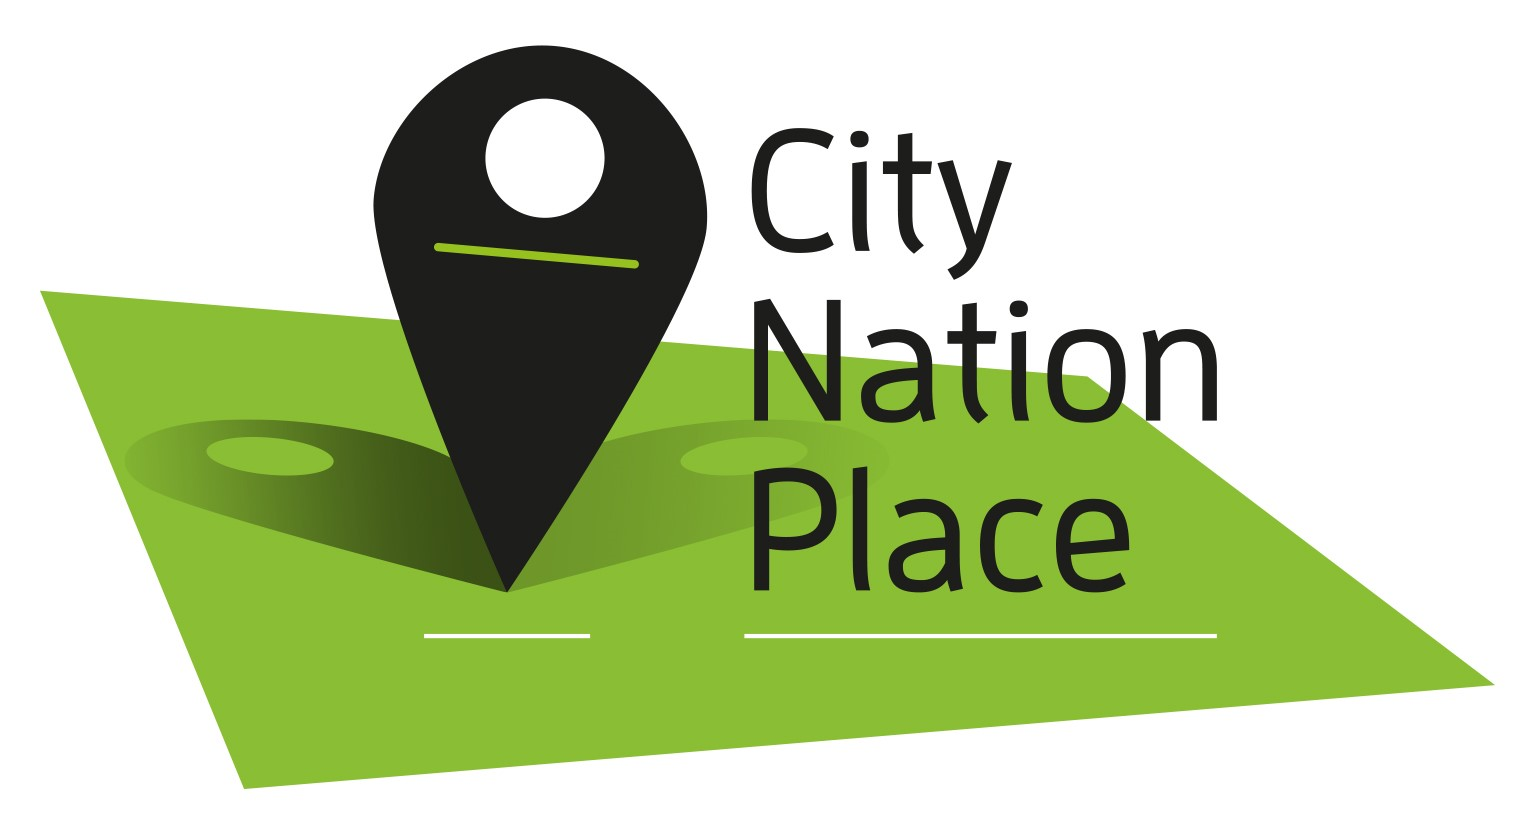 City Nation Place